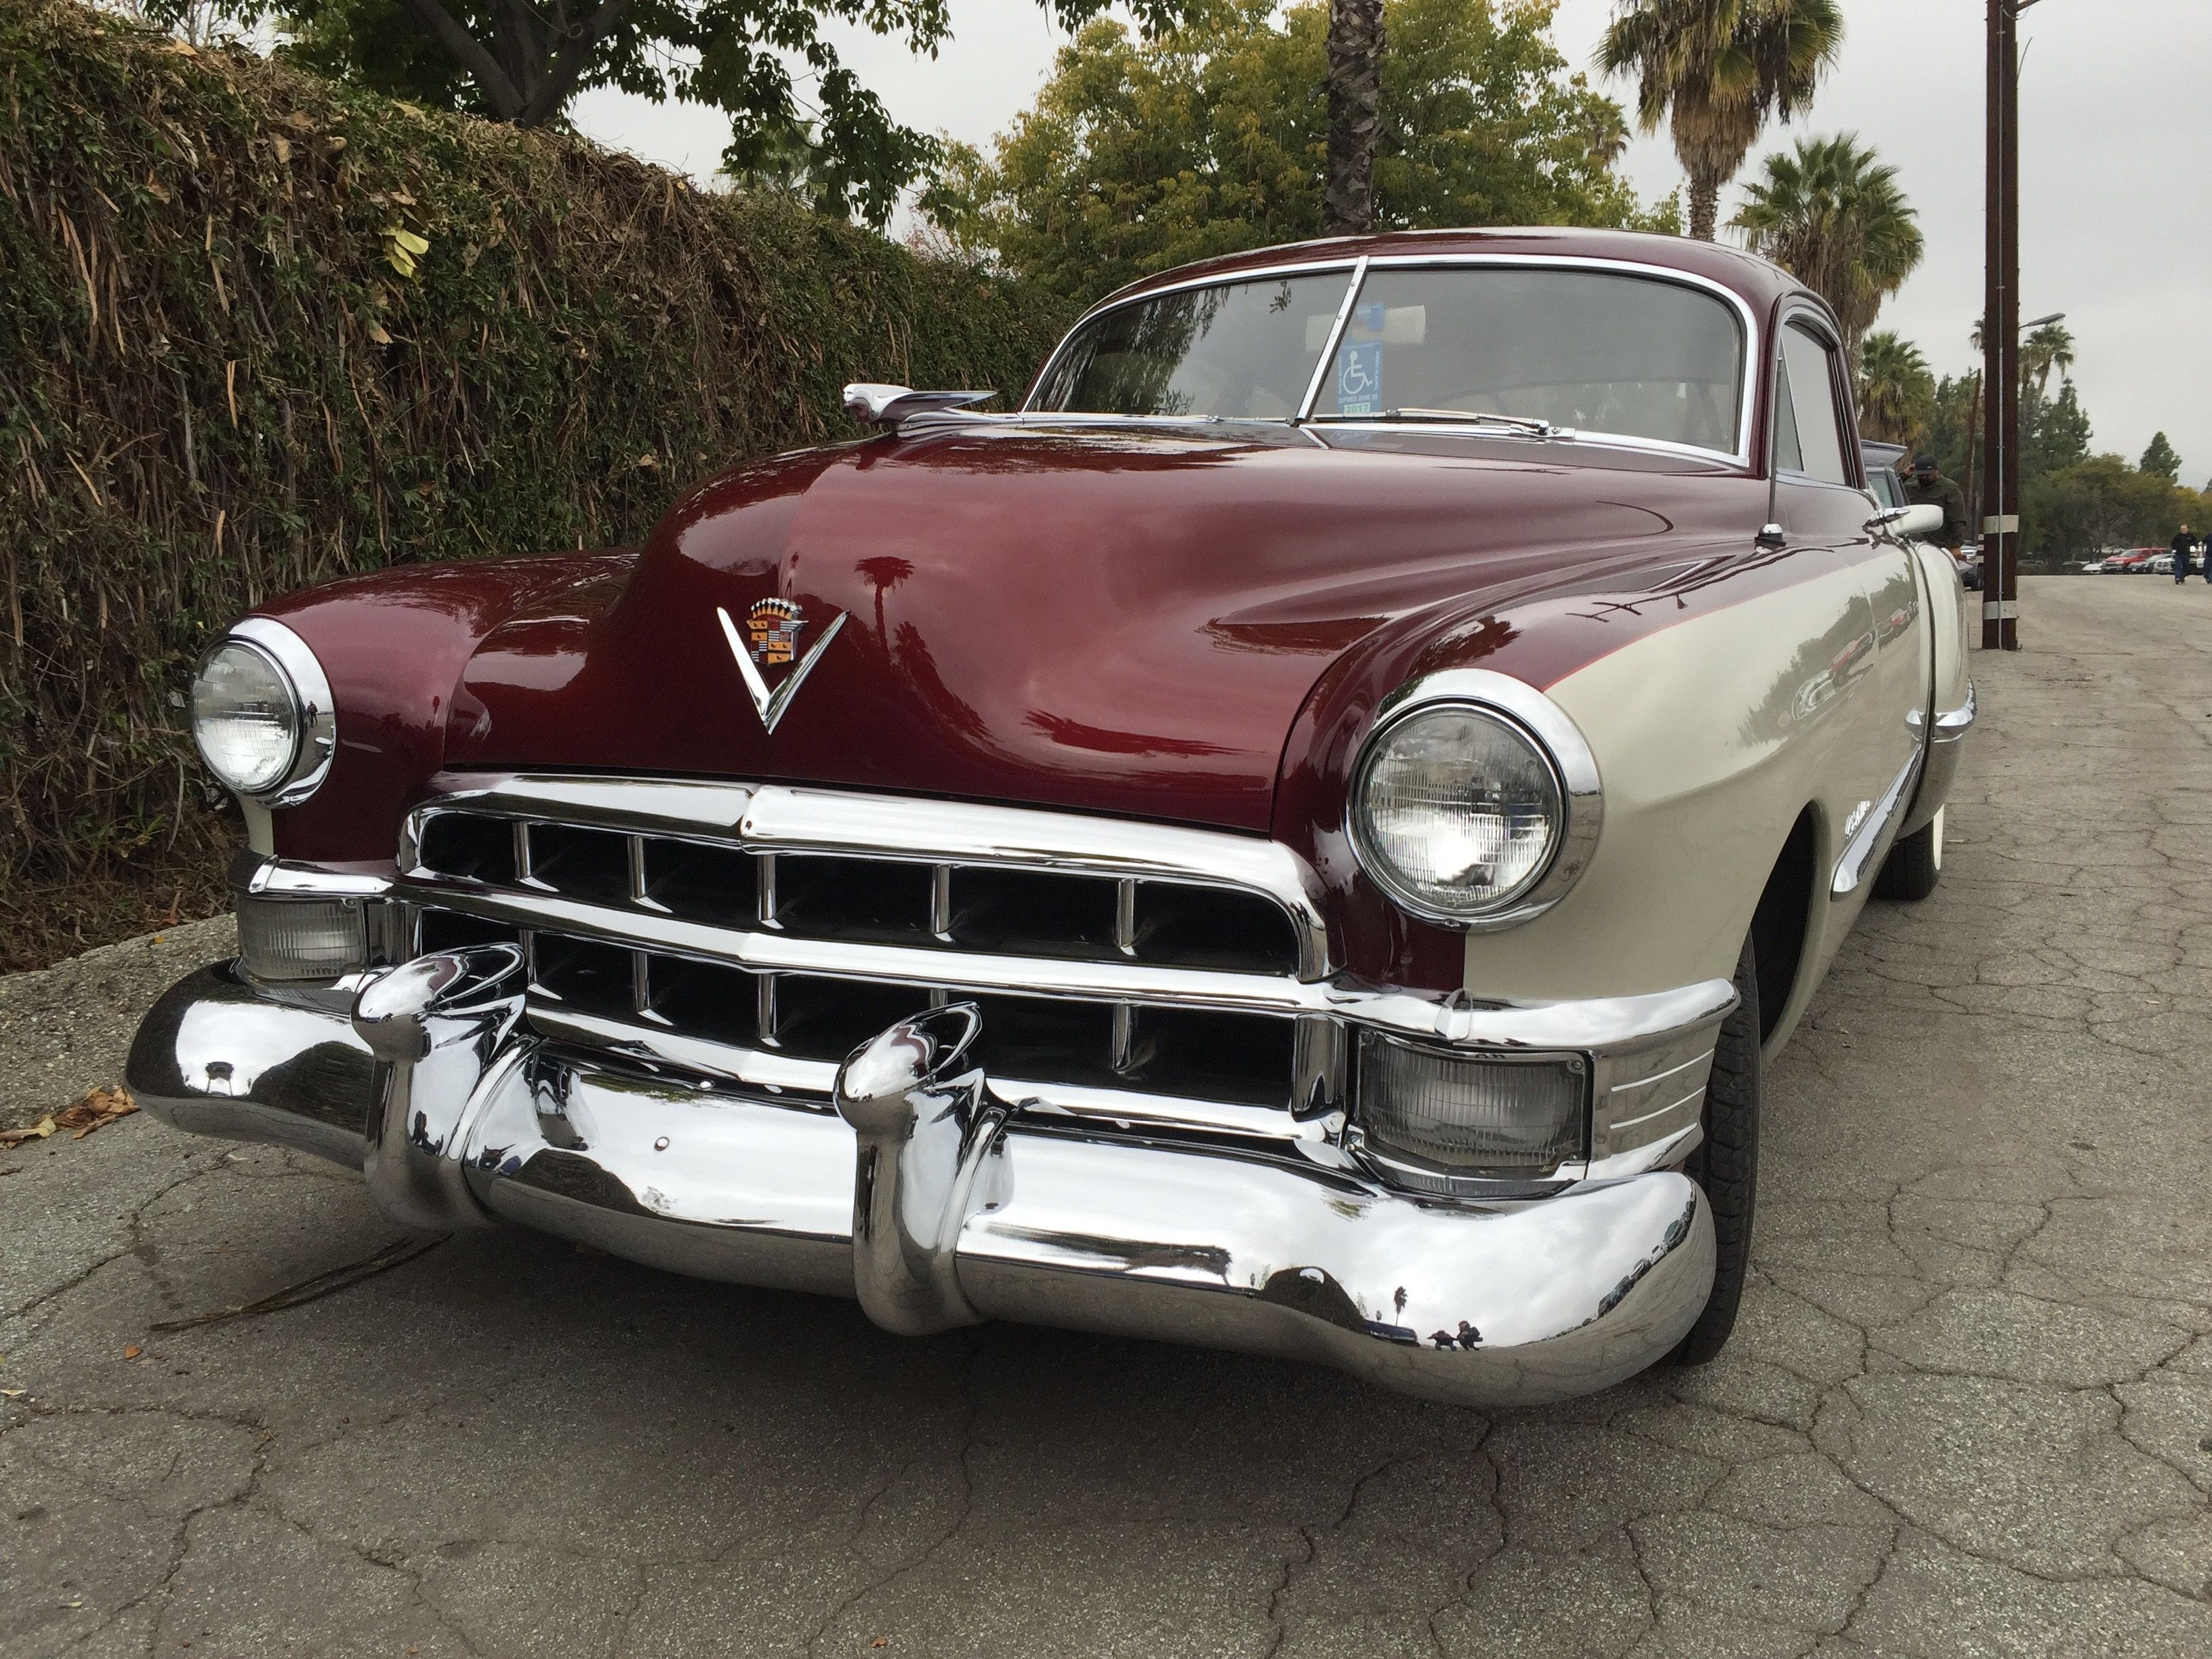 1949 CADILLAC Automobile Restoration Parts and Accessories ...